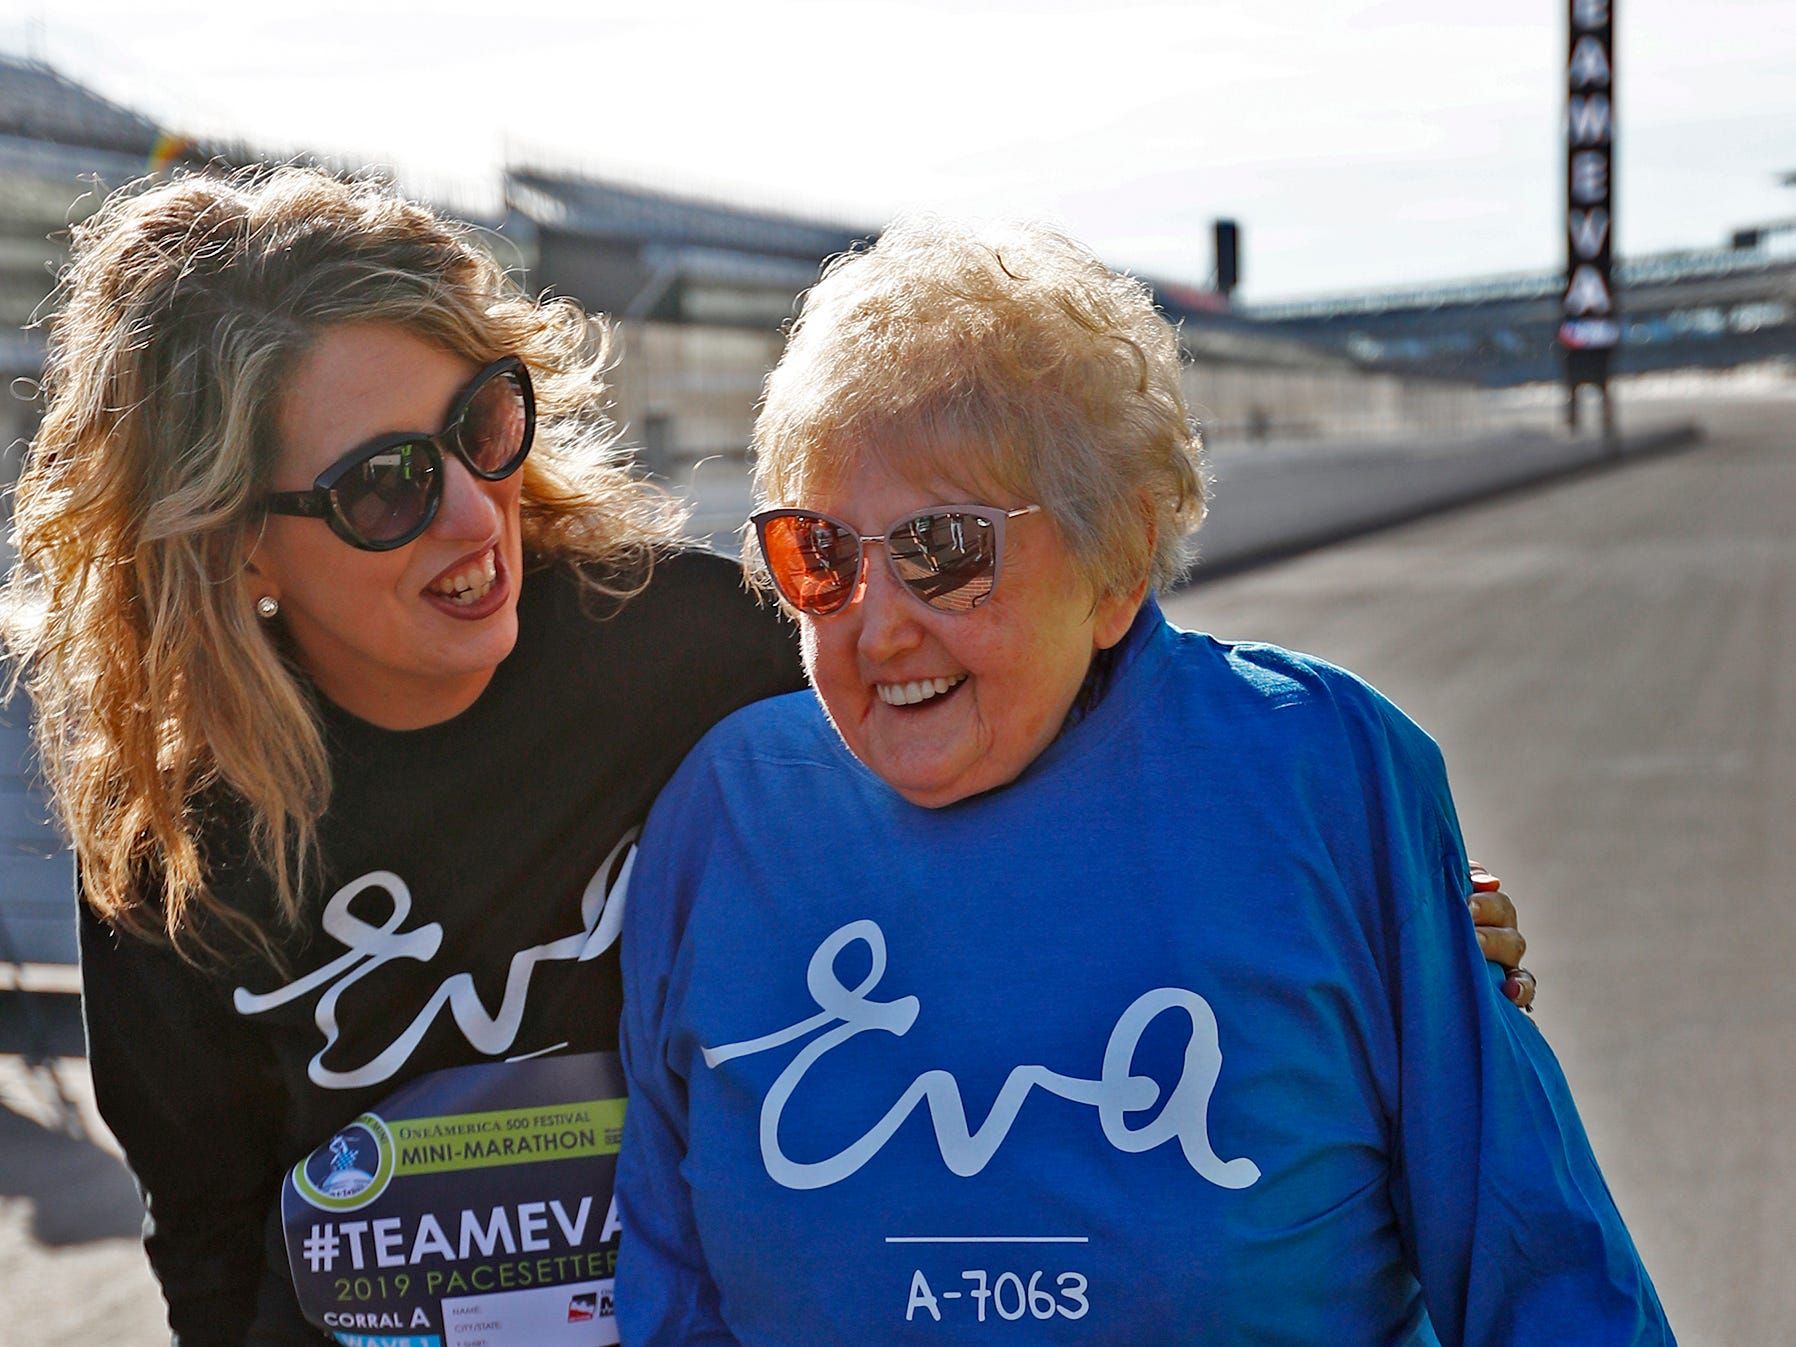 Holocaust survivor Eva Kor, right, joins others, including Epha Riche, at the Indianapolis Motor Speedway Yard of Bricks for photos, Wednesday, Oct. 24, 2018, during the pace-setting run for the 2019 OneAmerica 500 Festival Mini-Marathon.  The 500 Festival will donate $1 to the CANDLES Holocaust Museum in Terre Haute for every mini-marathon participant who finishes the 2019 race in a better time than Team Eva.  Kor ran the very last of the relay race.